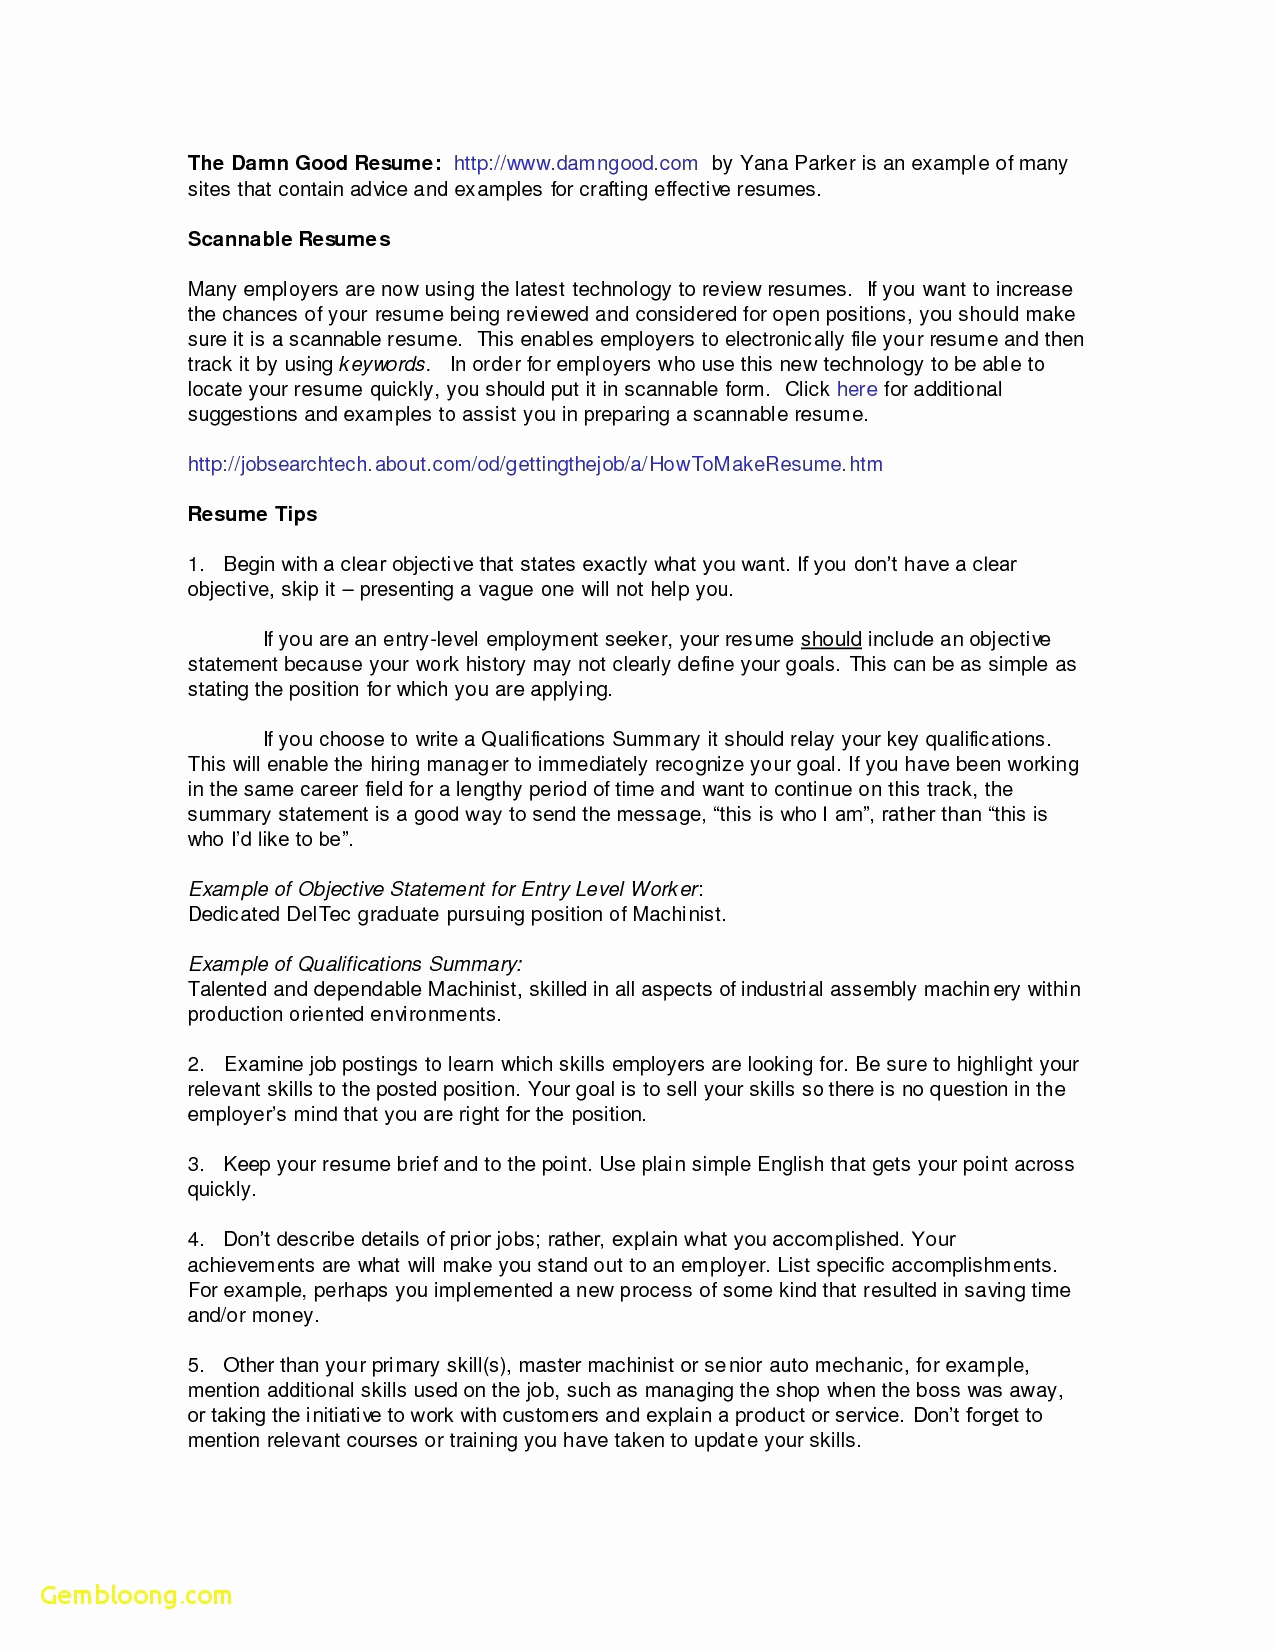 Resume Objective Example Resume Summary Samples Account Manager Beautiful Photos Resume For Accounting Job Fresh Resume Objective Examples Account Of Resume Summary Samples Account Manager resume objective example wikiresume.com